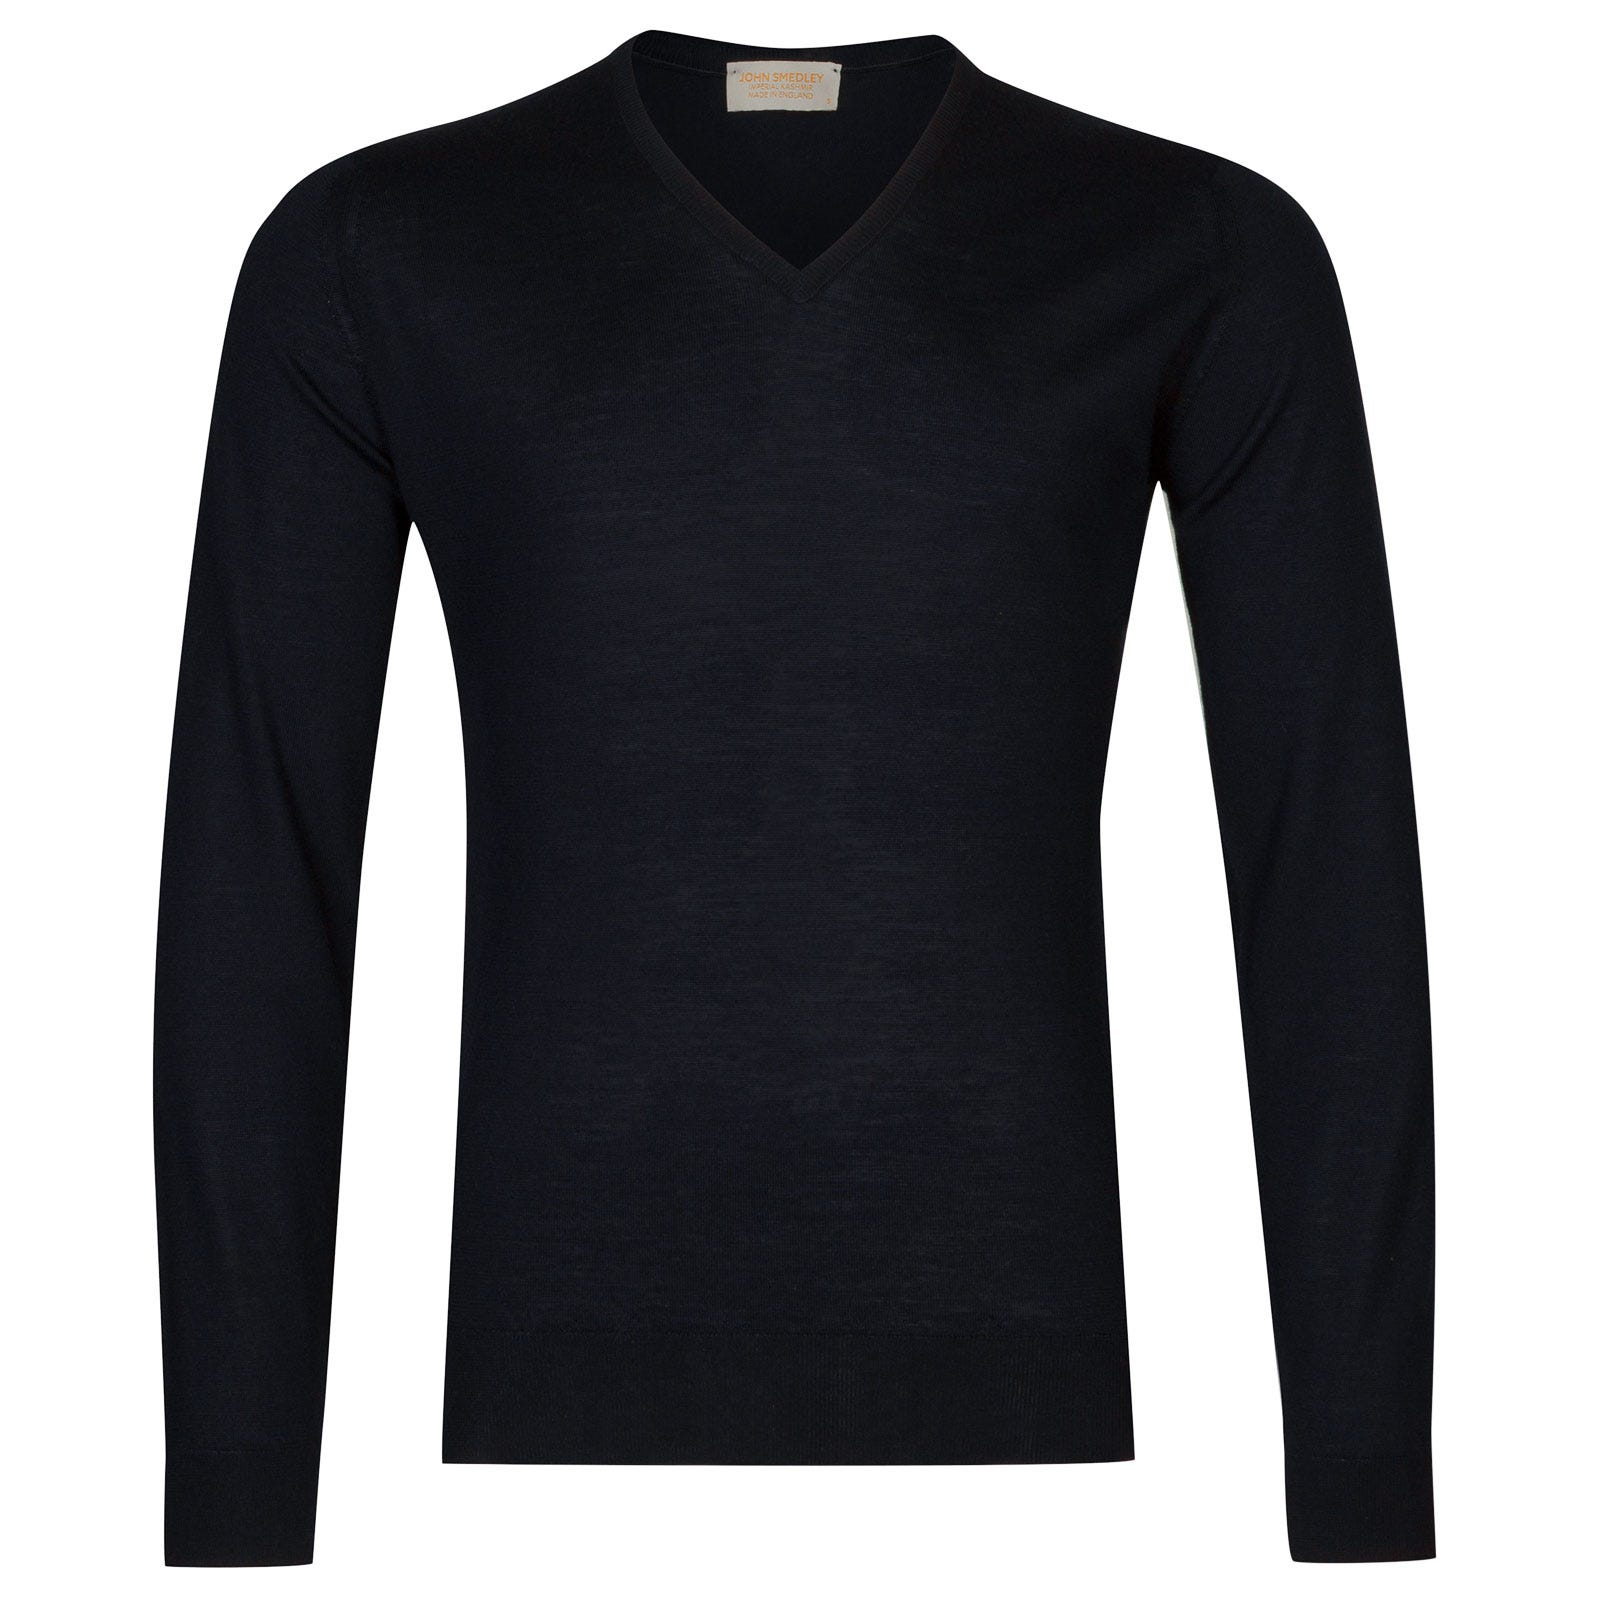 John Smedley newark Merino Wool and Cashmere Pullover in Midnight-XL